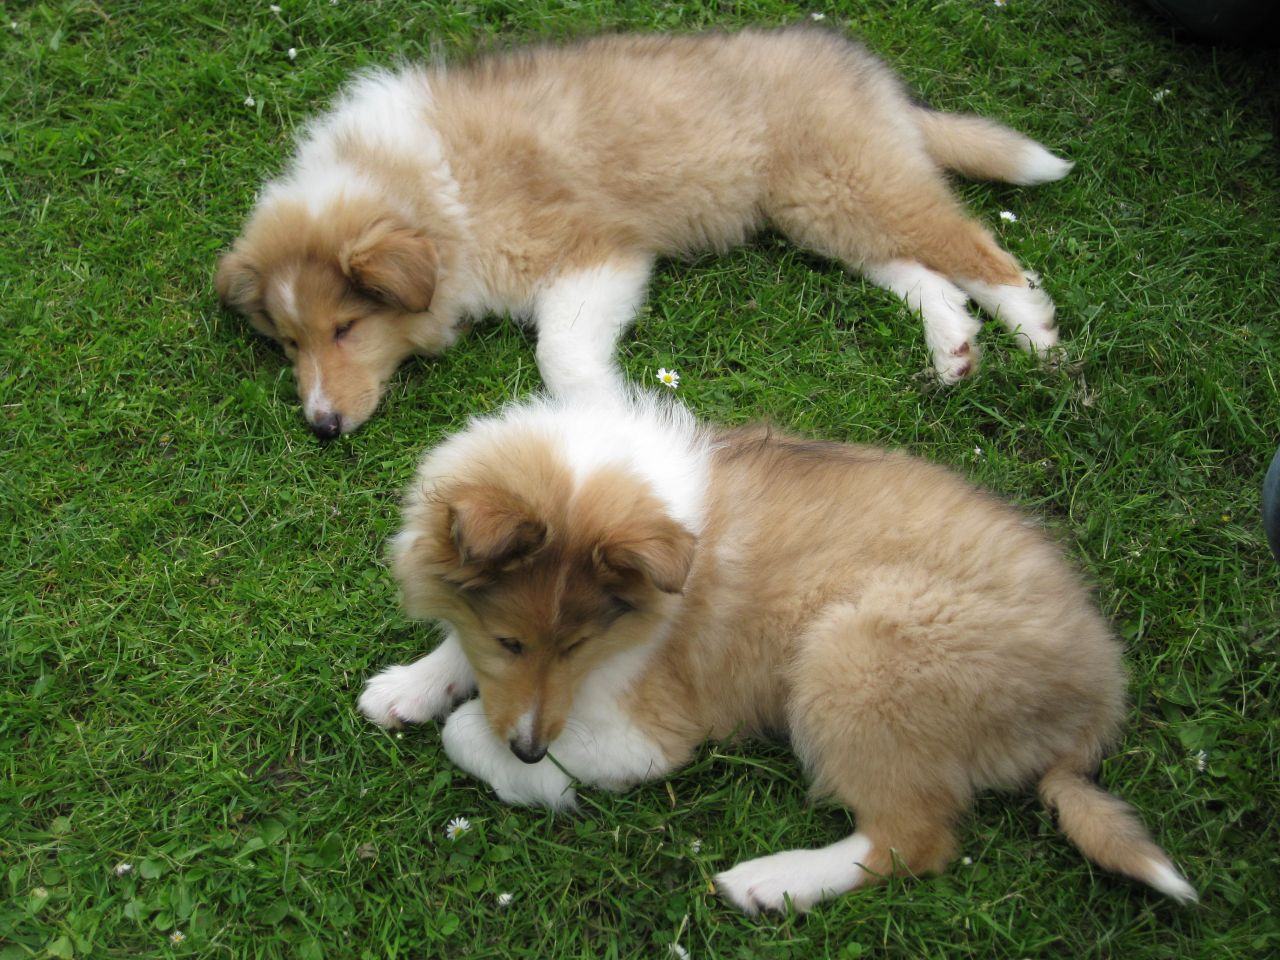 Collie, Rough Puppies: Collie, Rough Collie Puppies M F London Breed